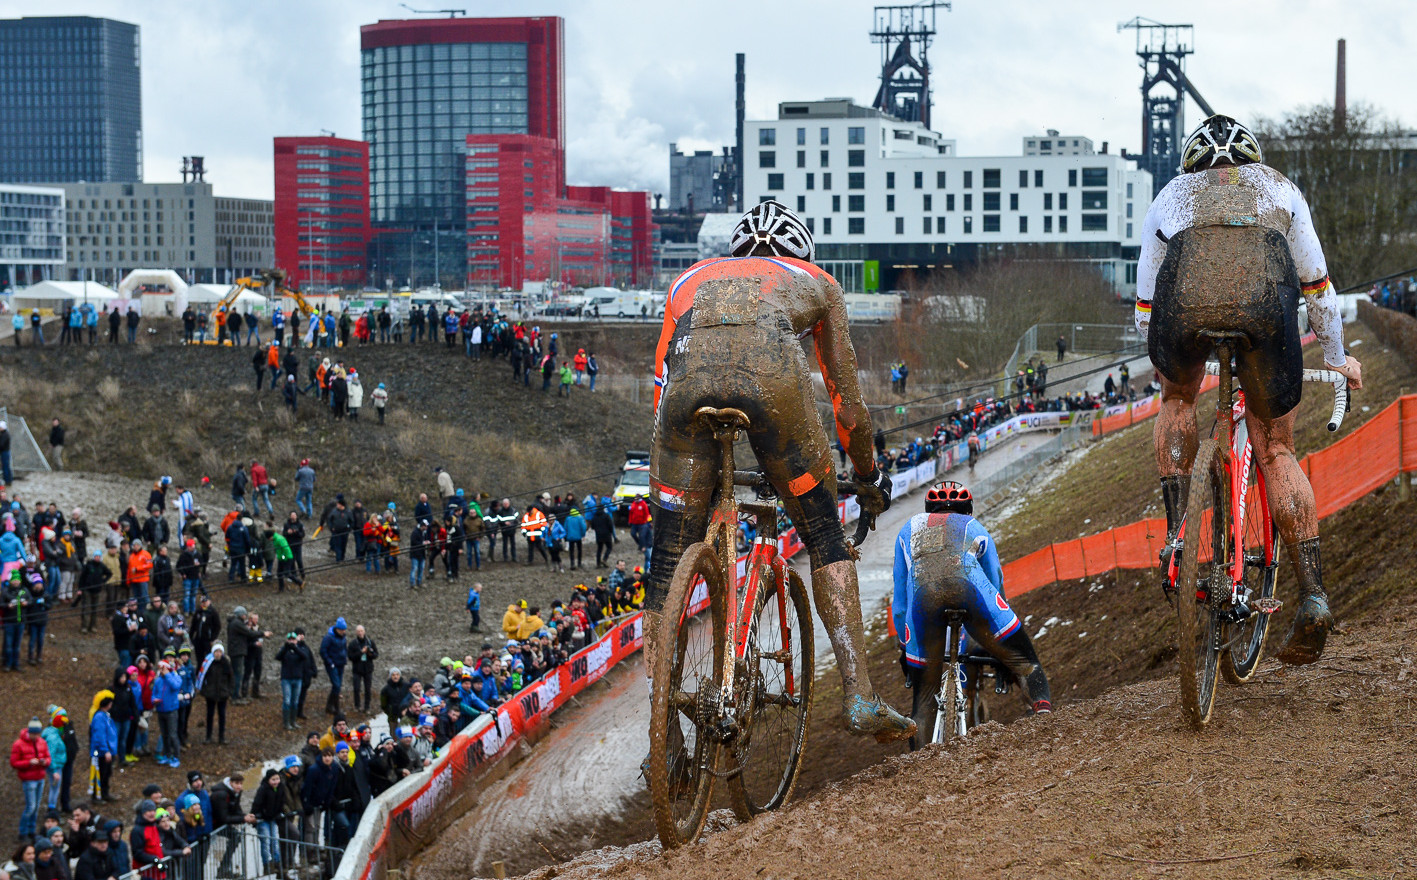 UCI-Cyclo-Cross World Championships in Bieles (Luxembourg) in 2017